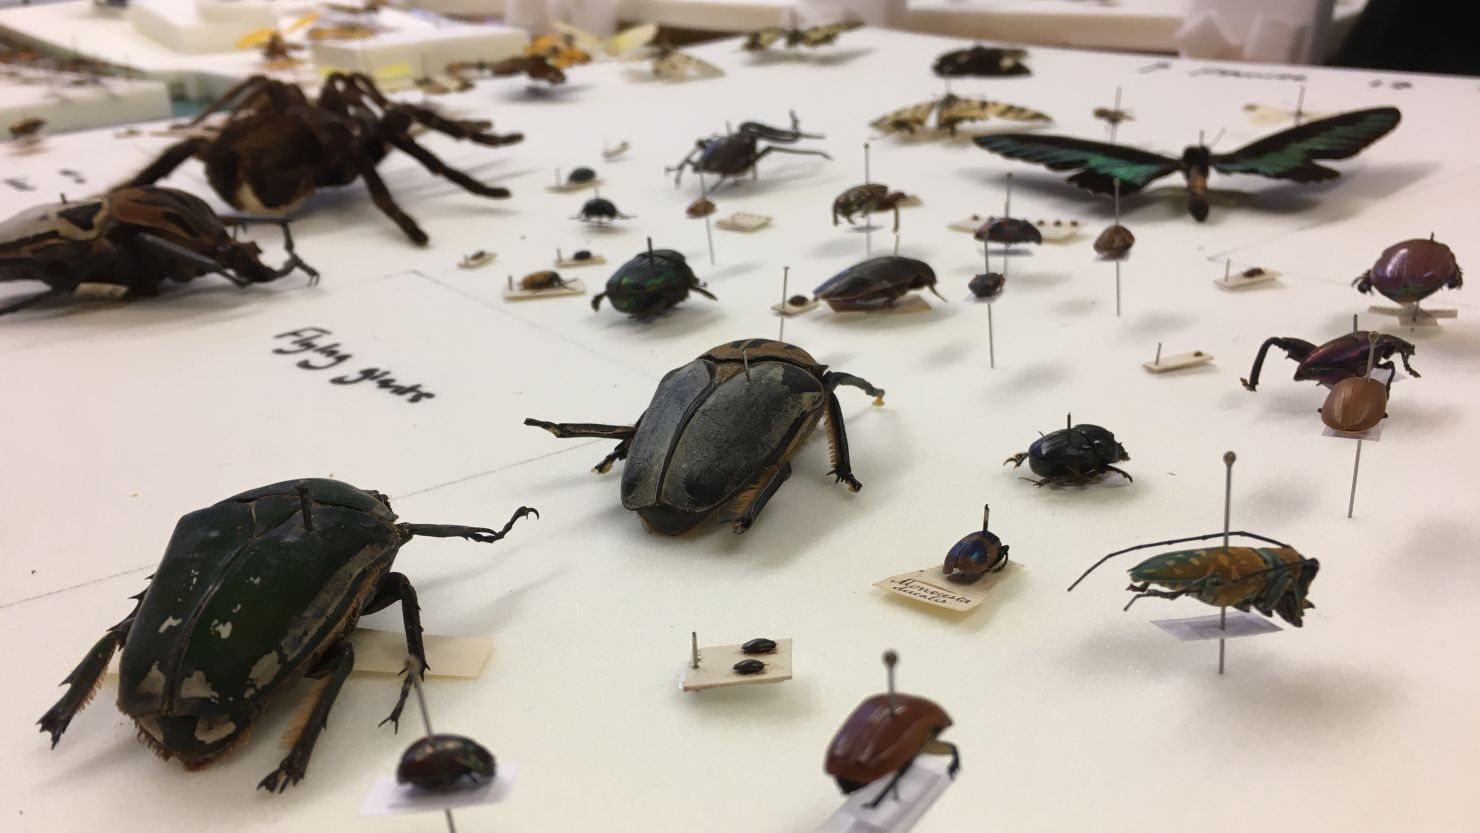 Pinned beetles from a natural history collection